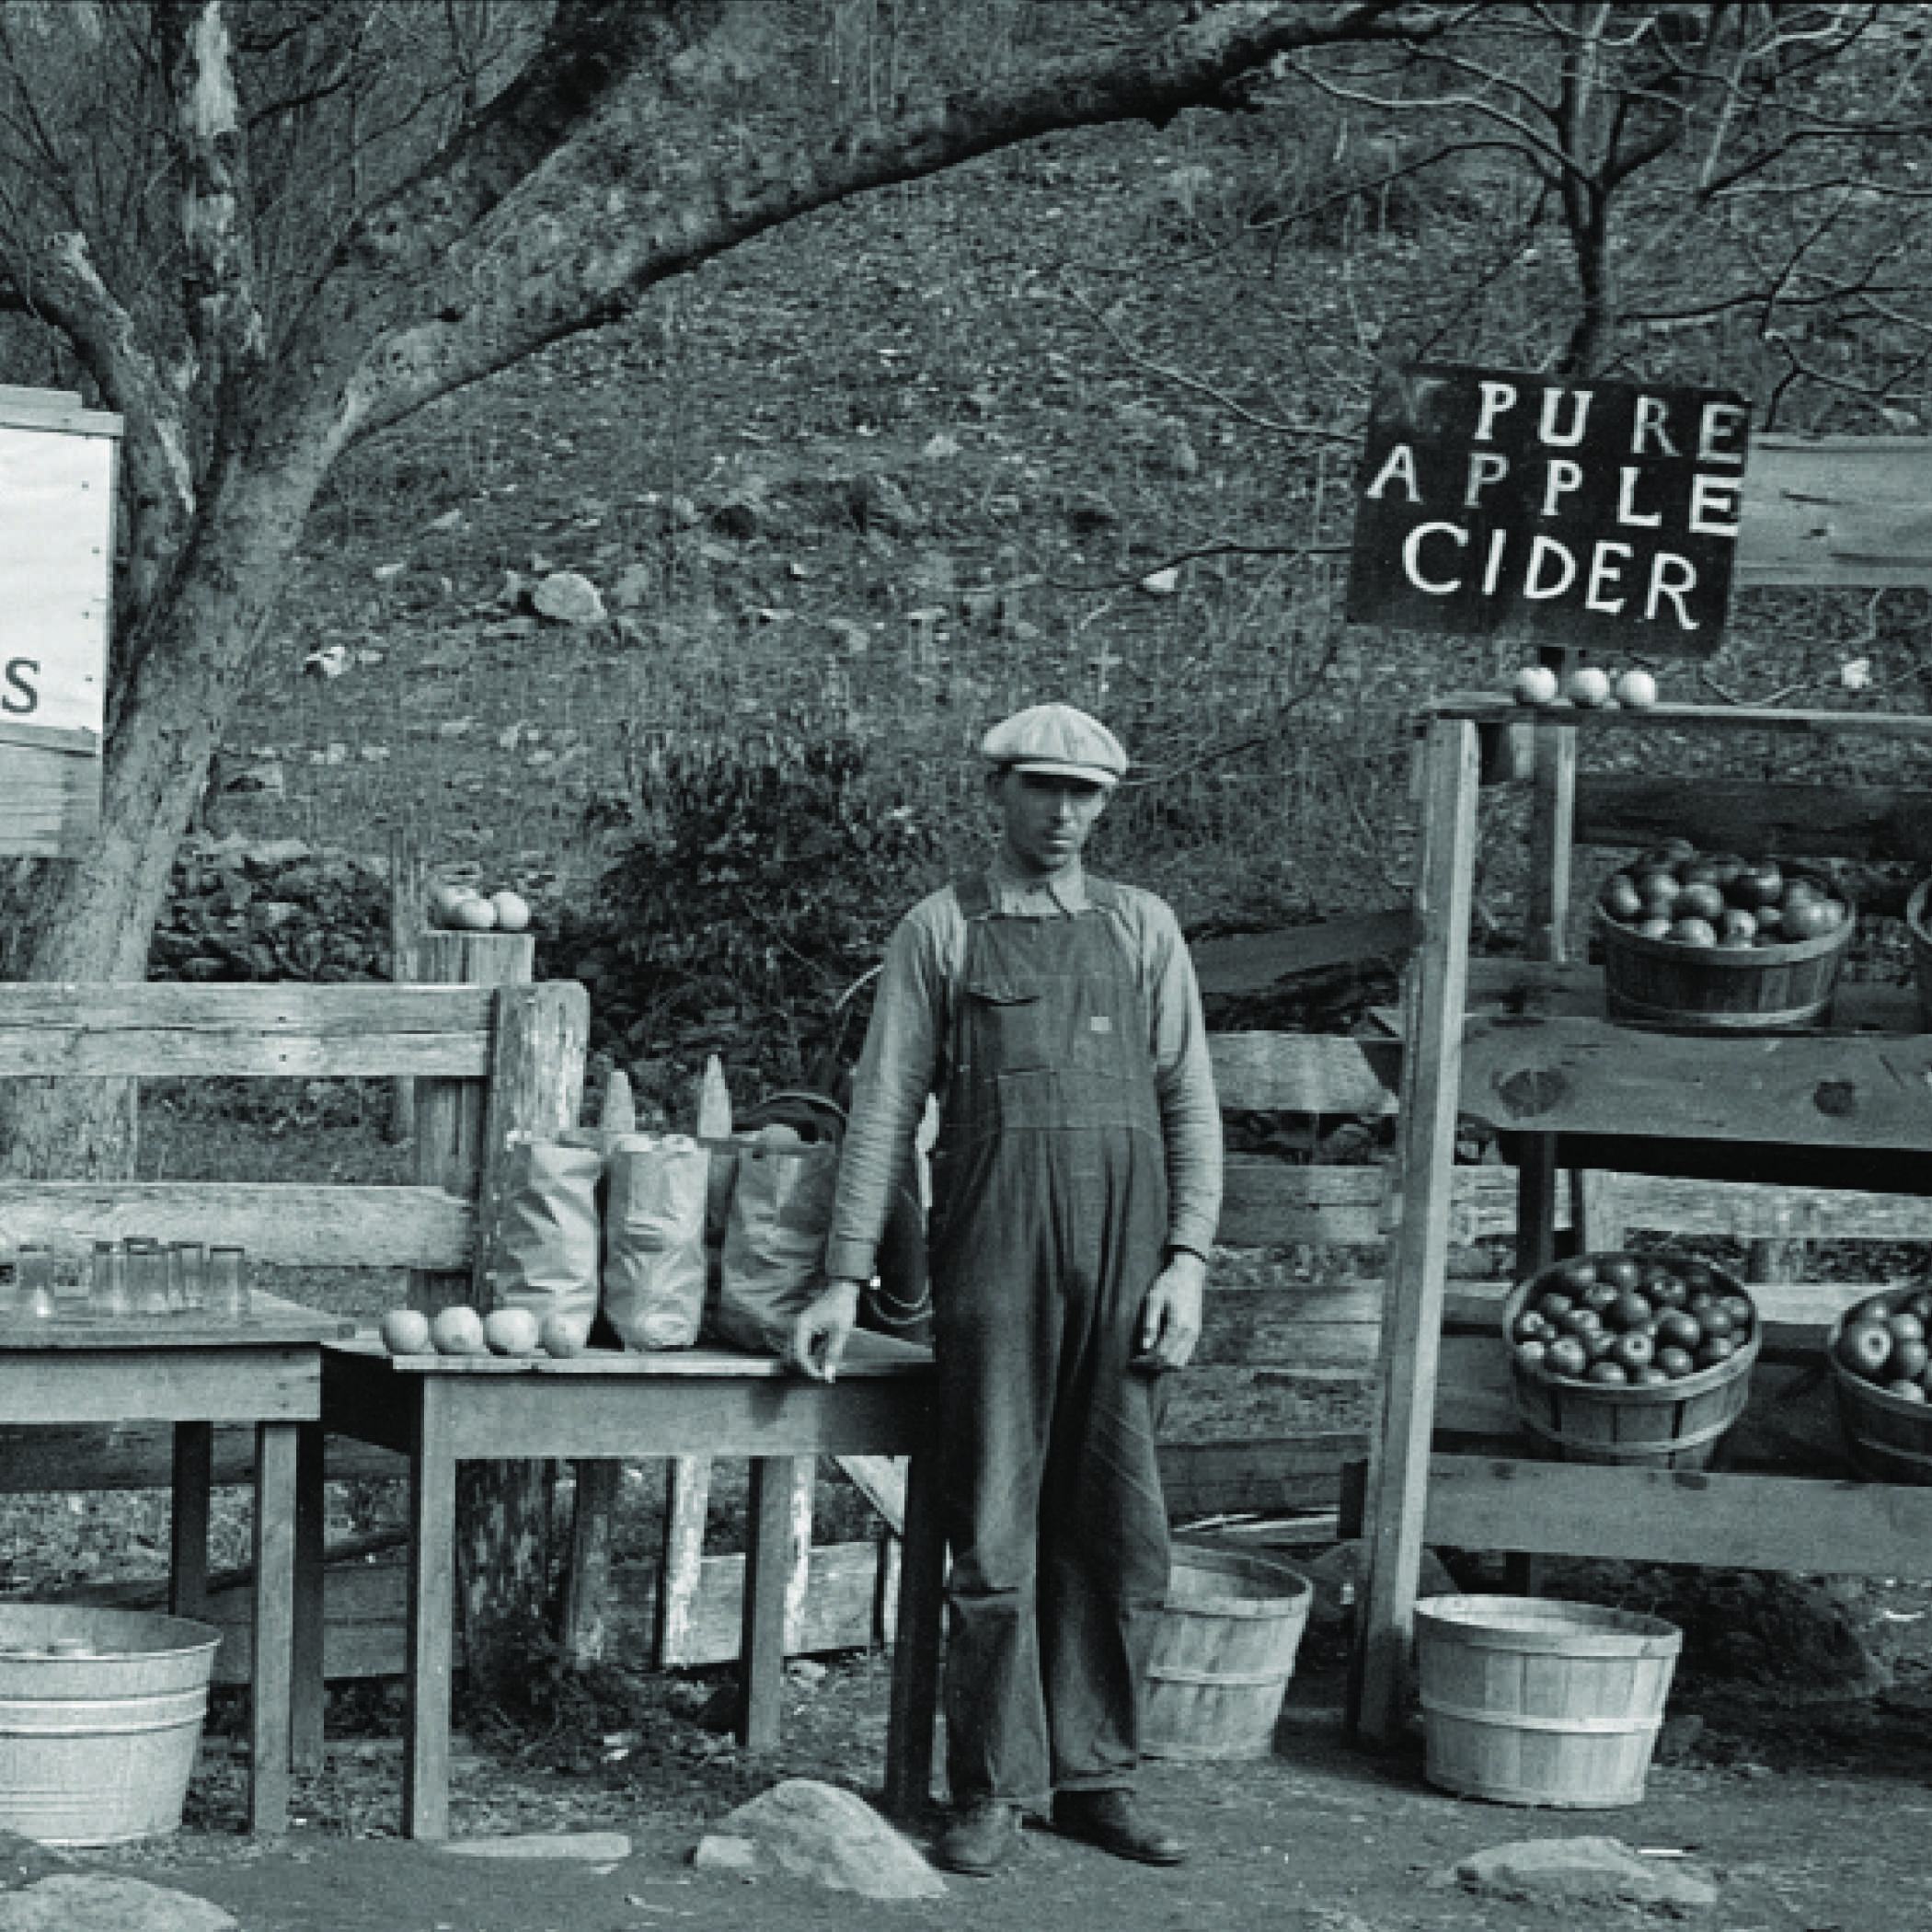 vintage photograph of a man in overalls standing in front of a fruit stand selling apples